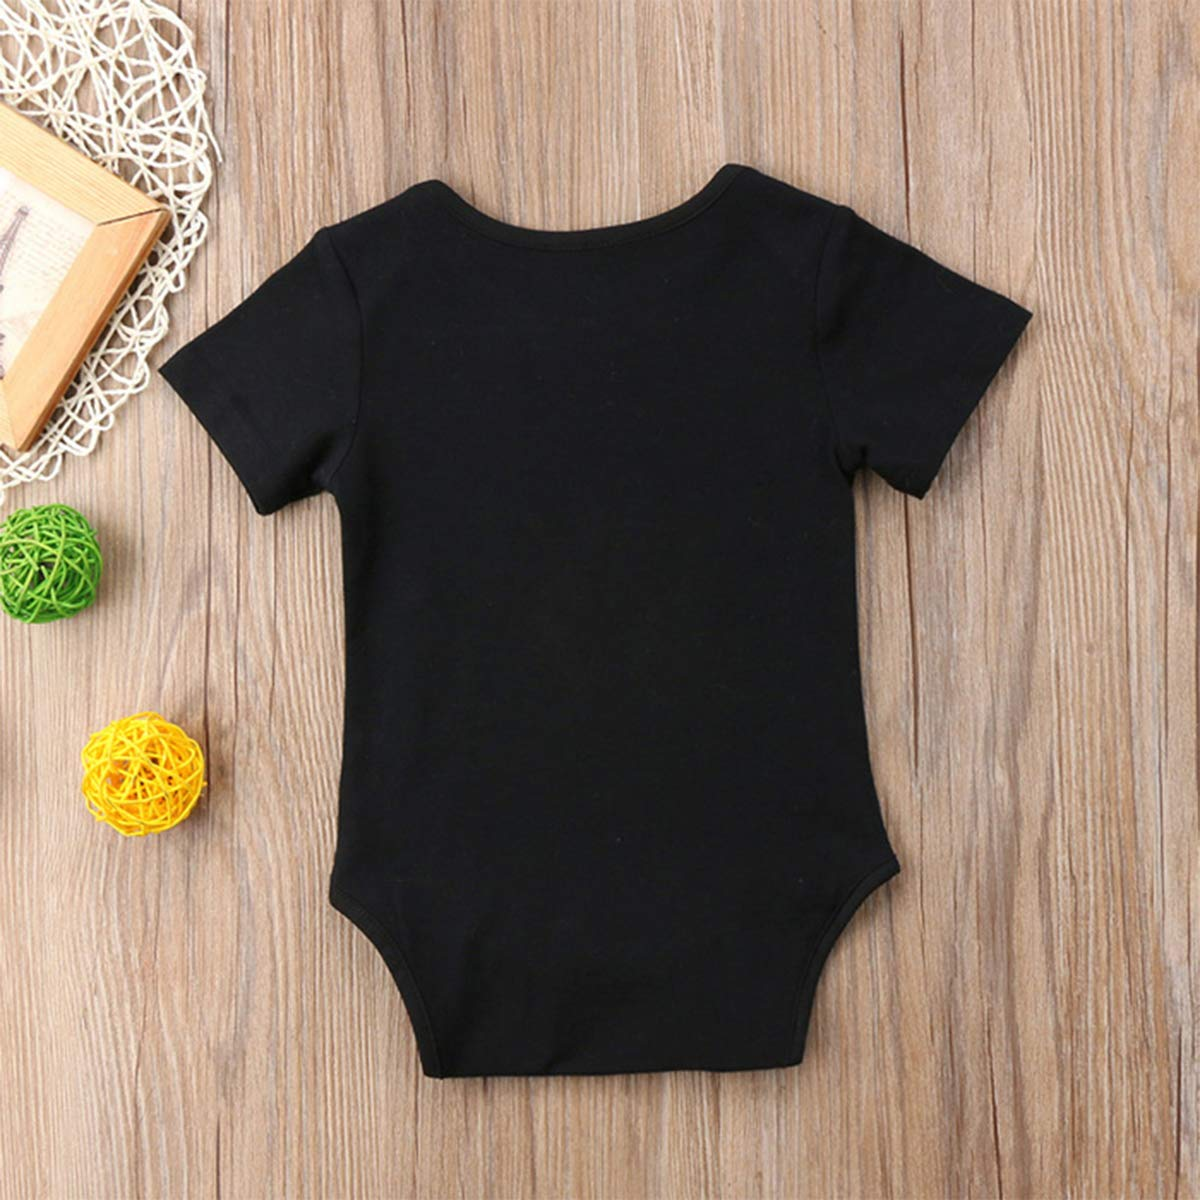 ZP-CCYF I Dont Wanna Taco Bout It Newborn Baby Bodysuit Cute Short Sleeve Romper Outfits